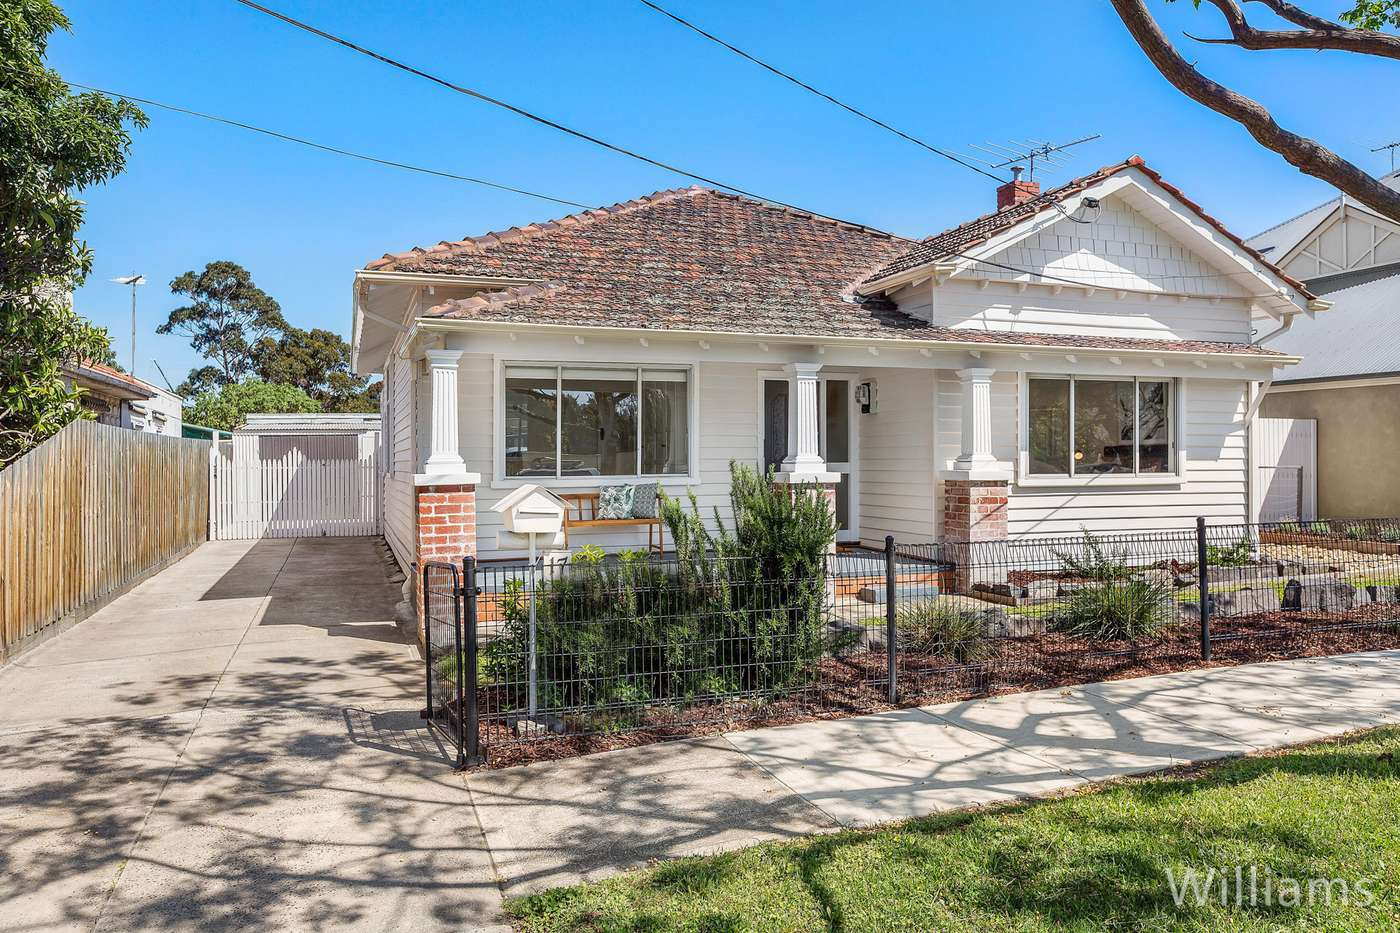 Main view of Homely house listing, 17 William Street, Newport, VIC 3015